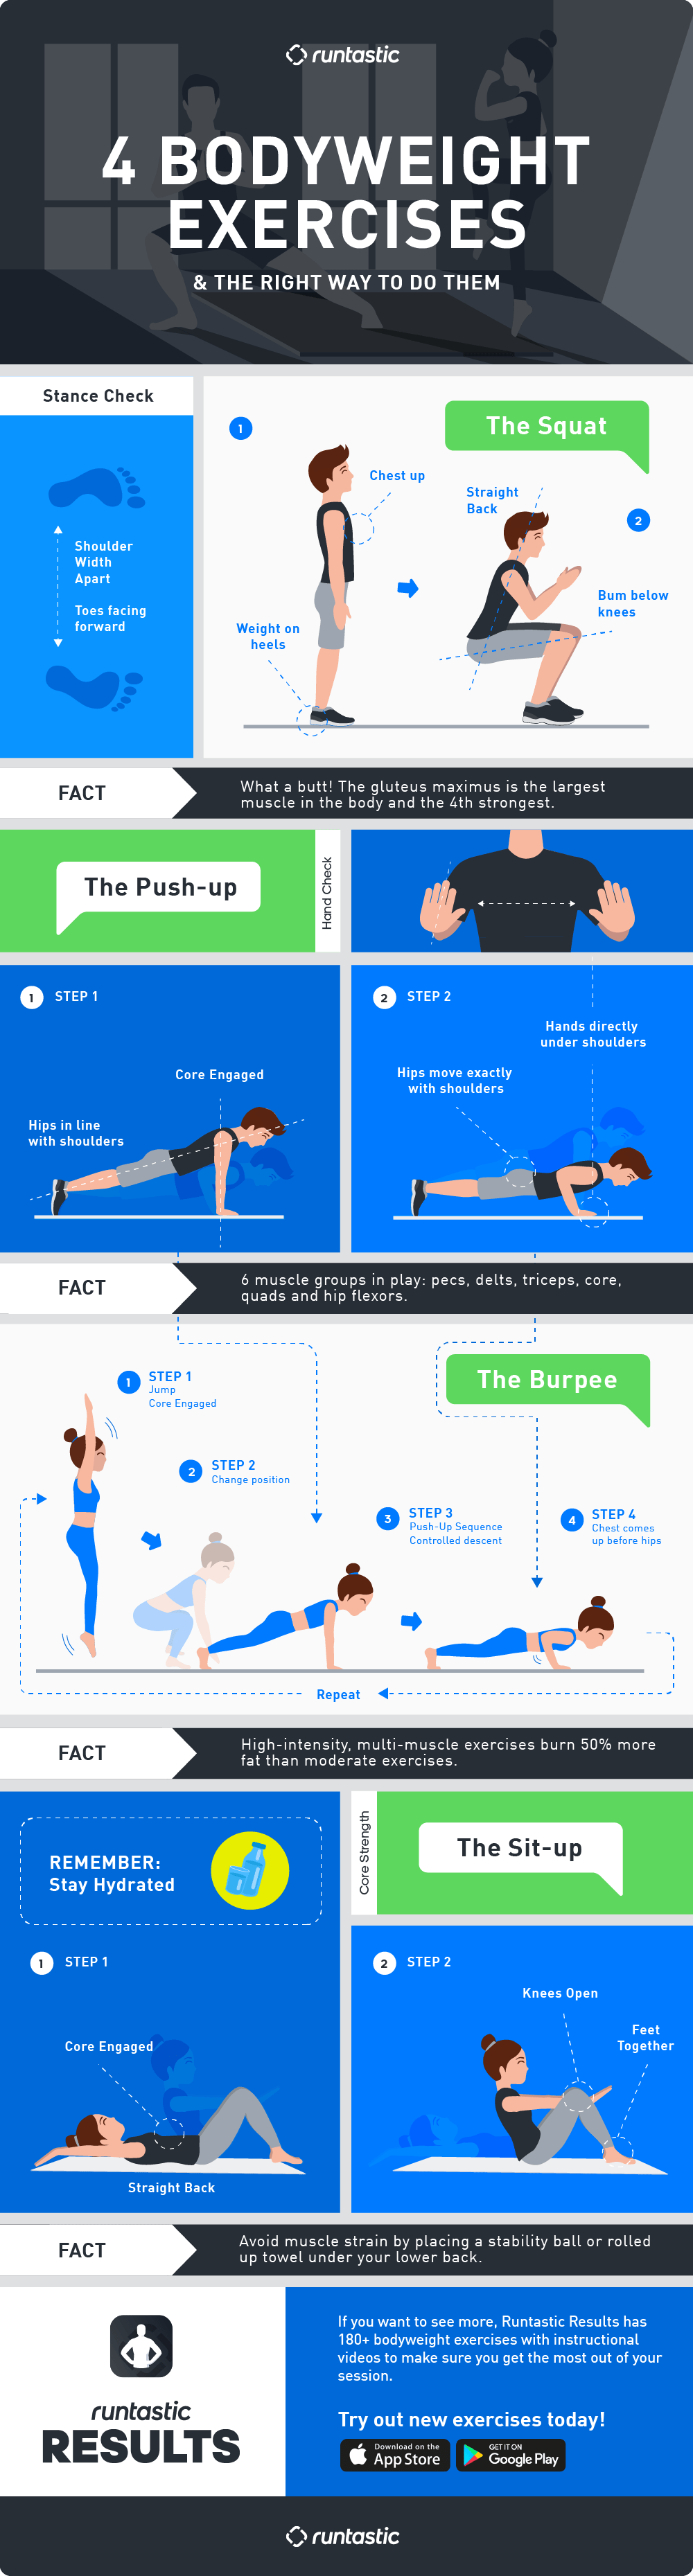 4 basic exercises infographic